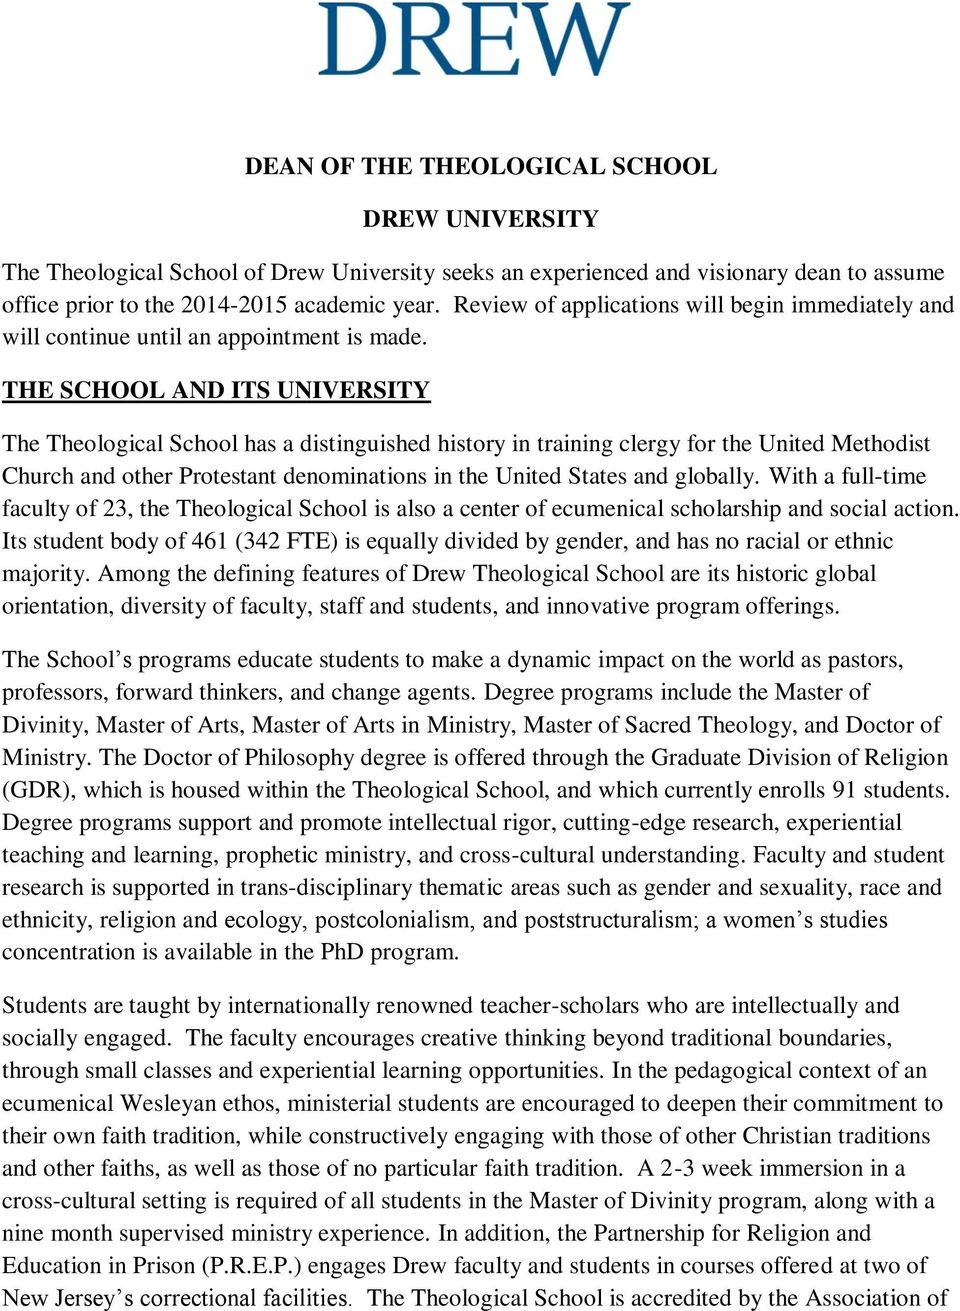 THE SCHOOL AND ITS UNIVERSITY The Theological School has a distinguished history in training clergy for the United Methodist Church and other Protestant denominations in the United States and